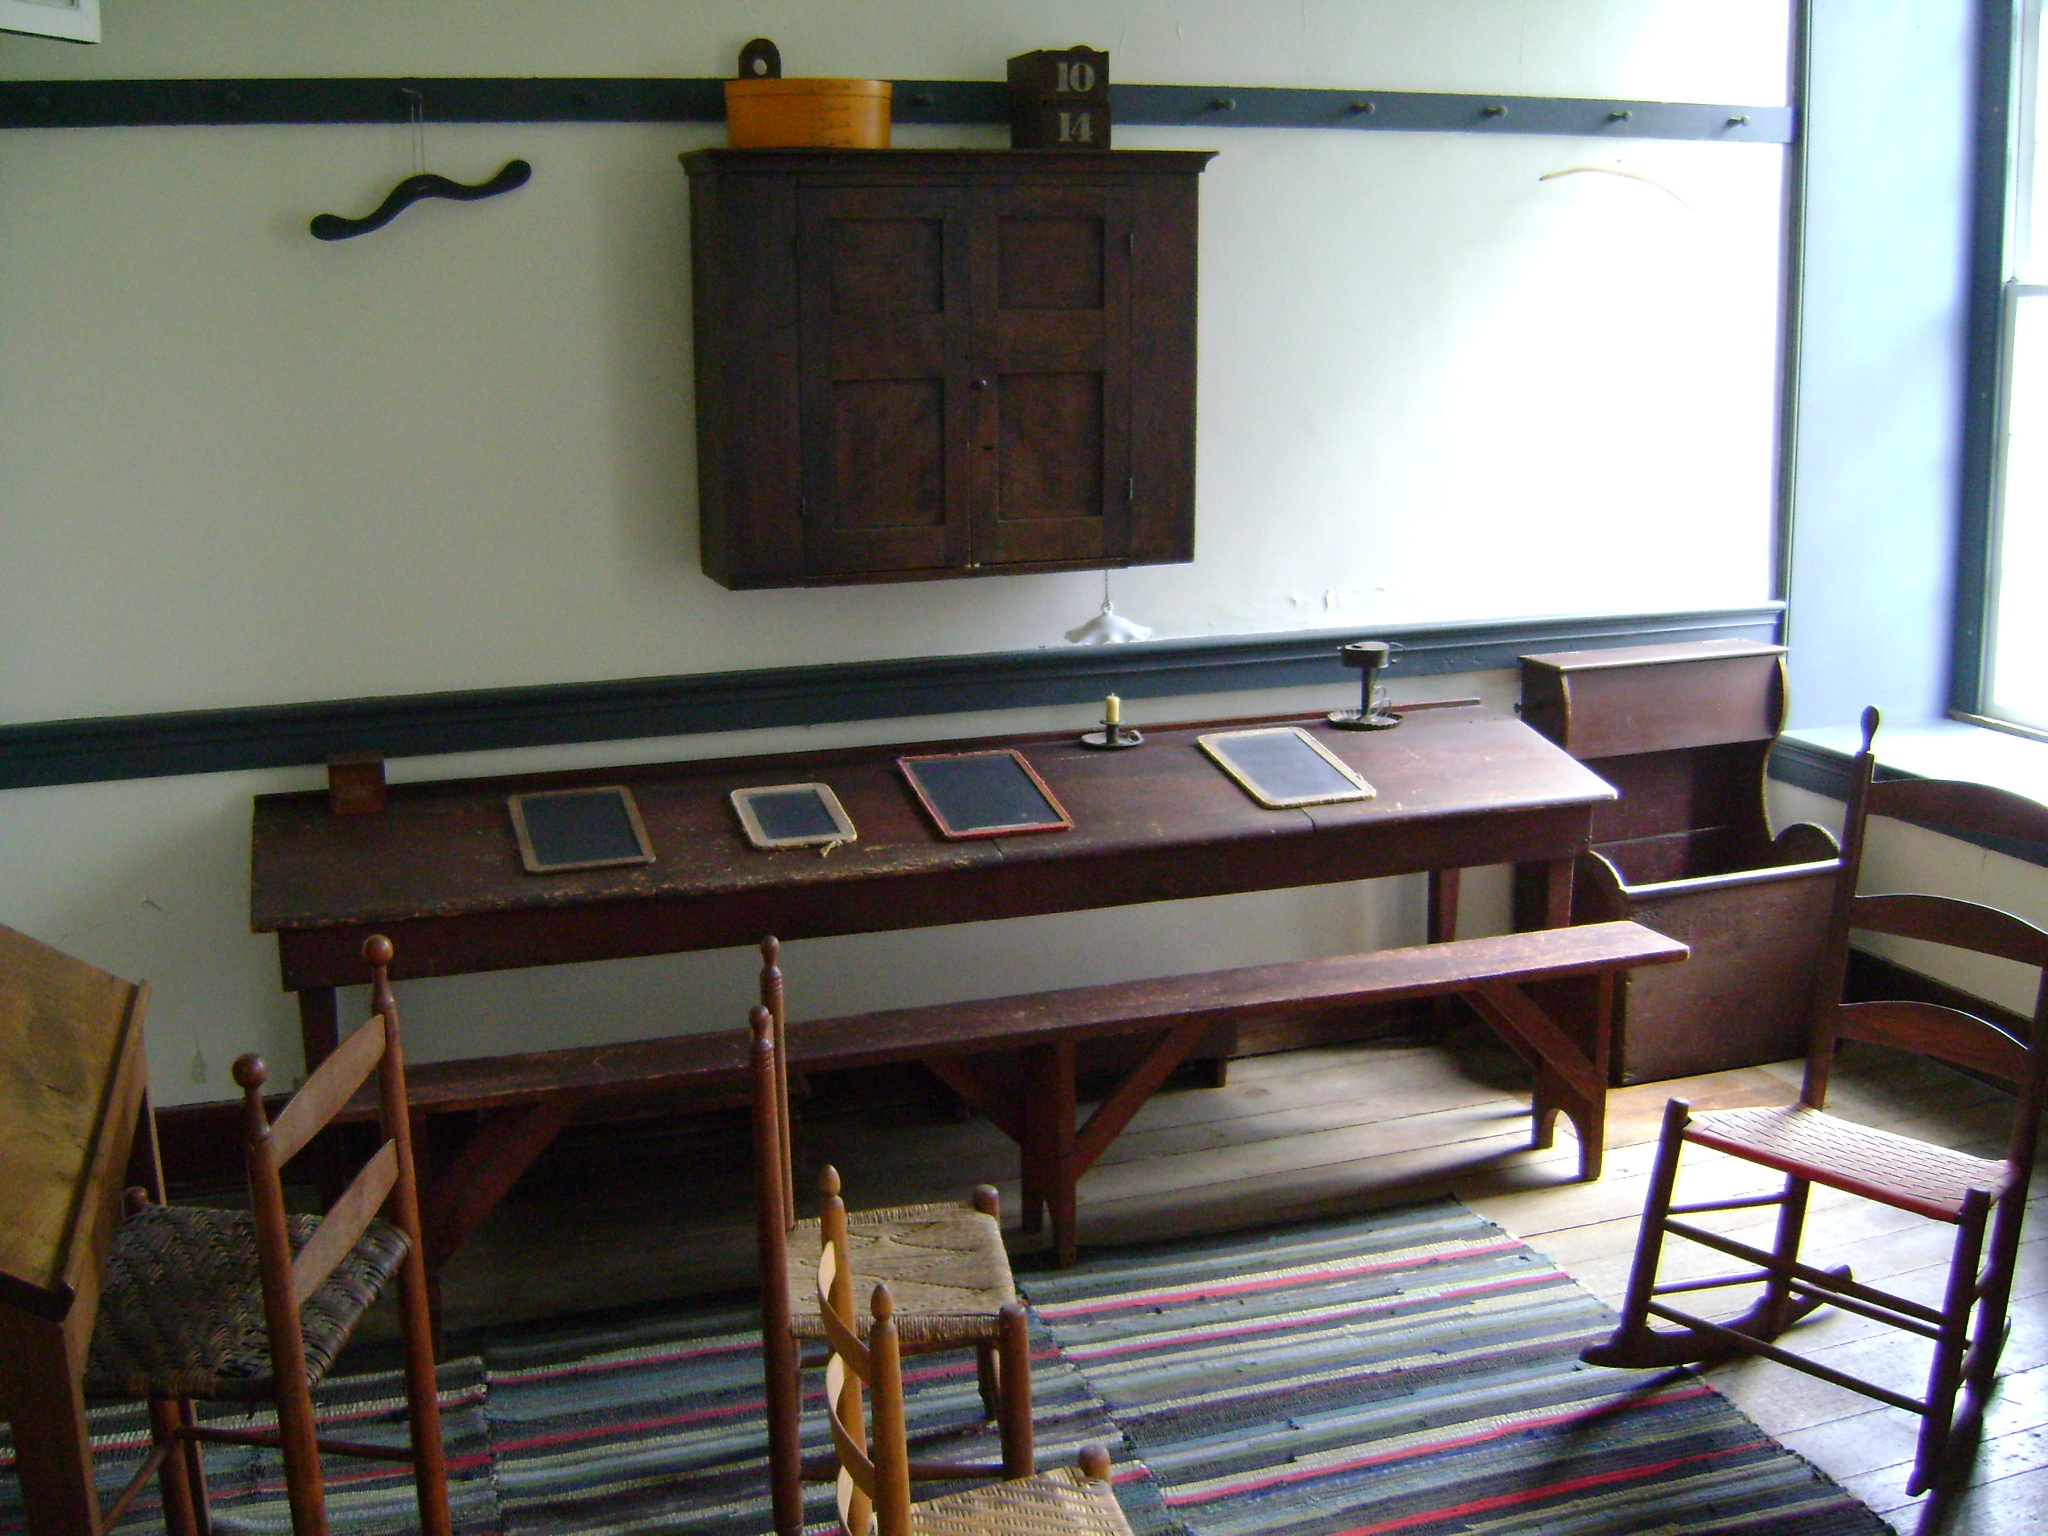 File:Shaker Student Furniture.JPG